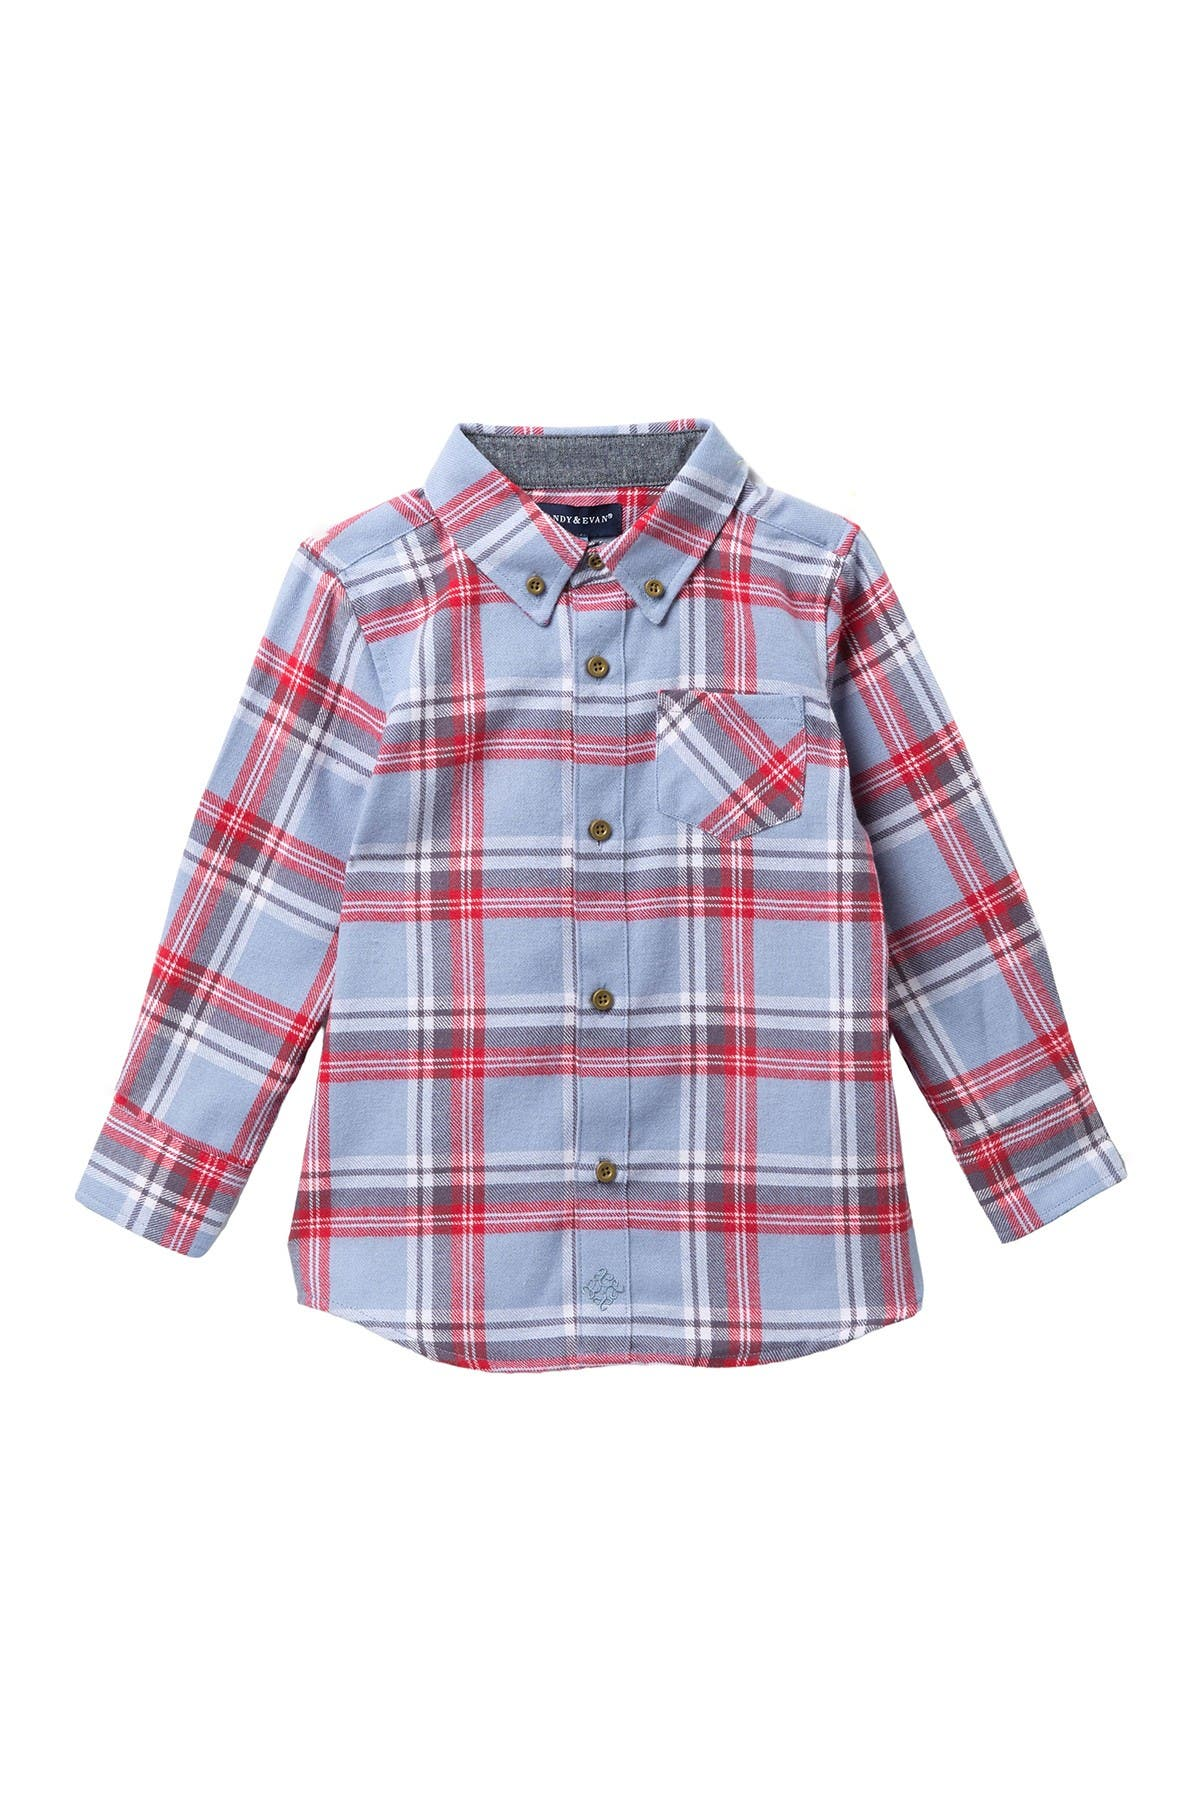 Image of Andy & Evan Plaid Flannel Button Up Shirt